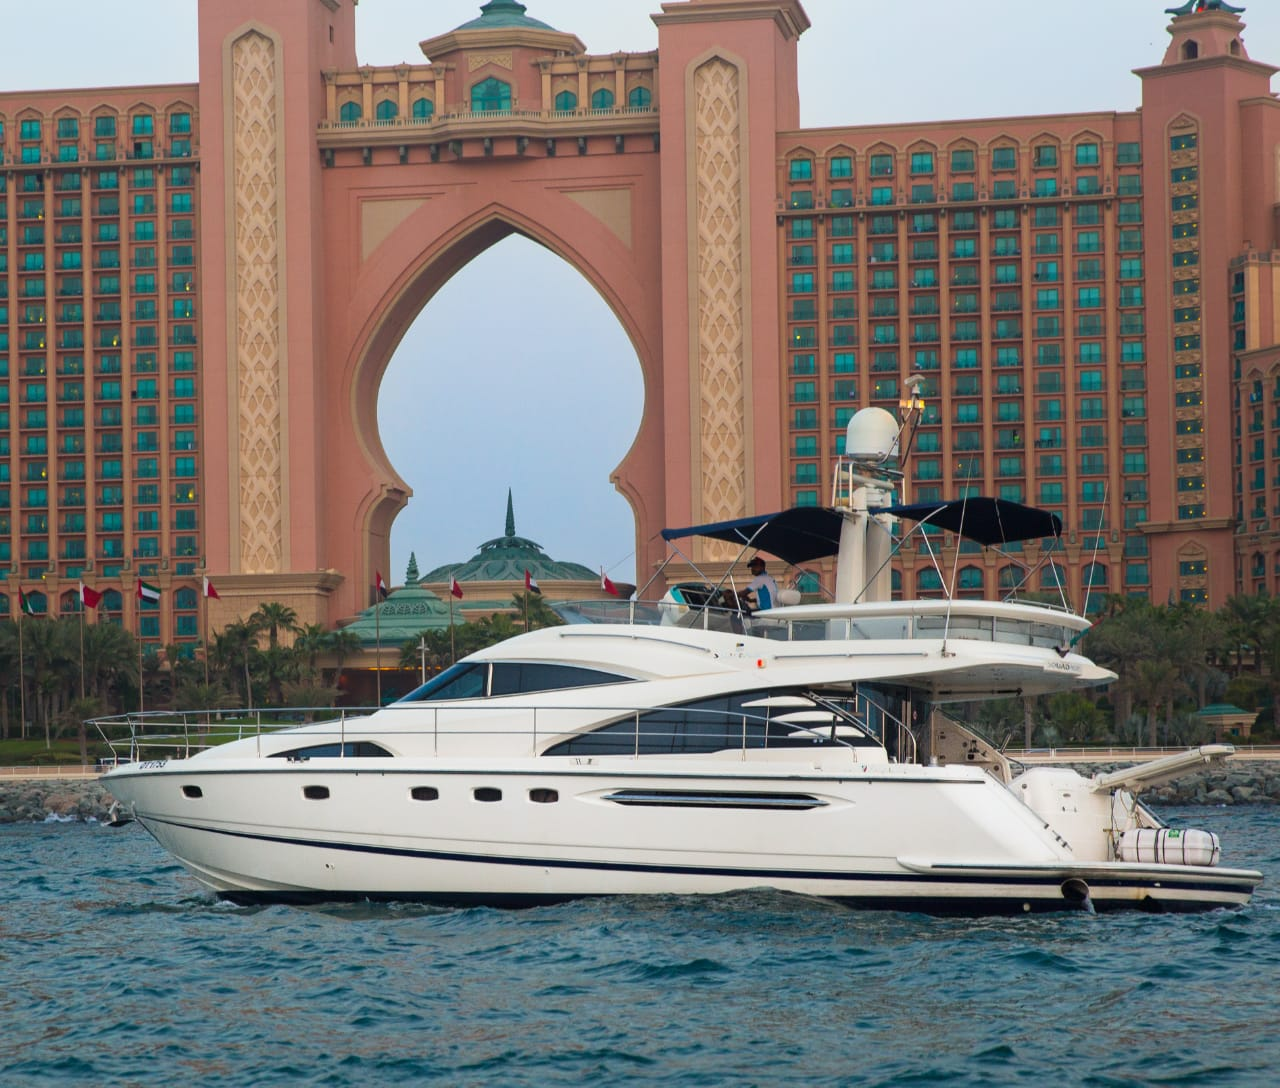 62ft yacht rental dubai marina